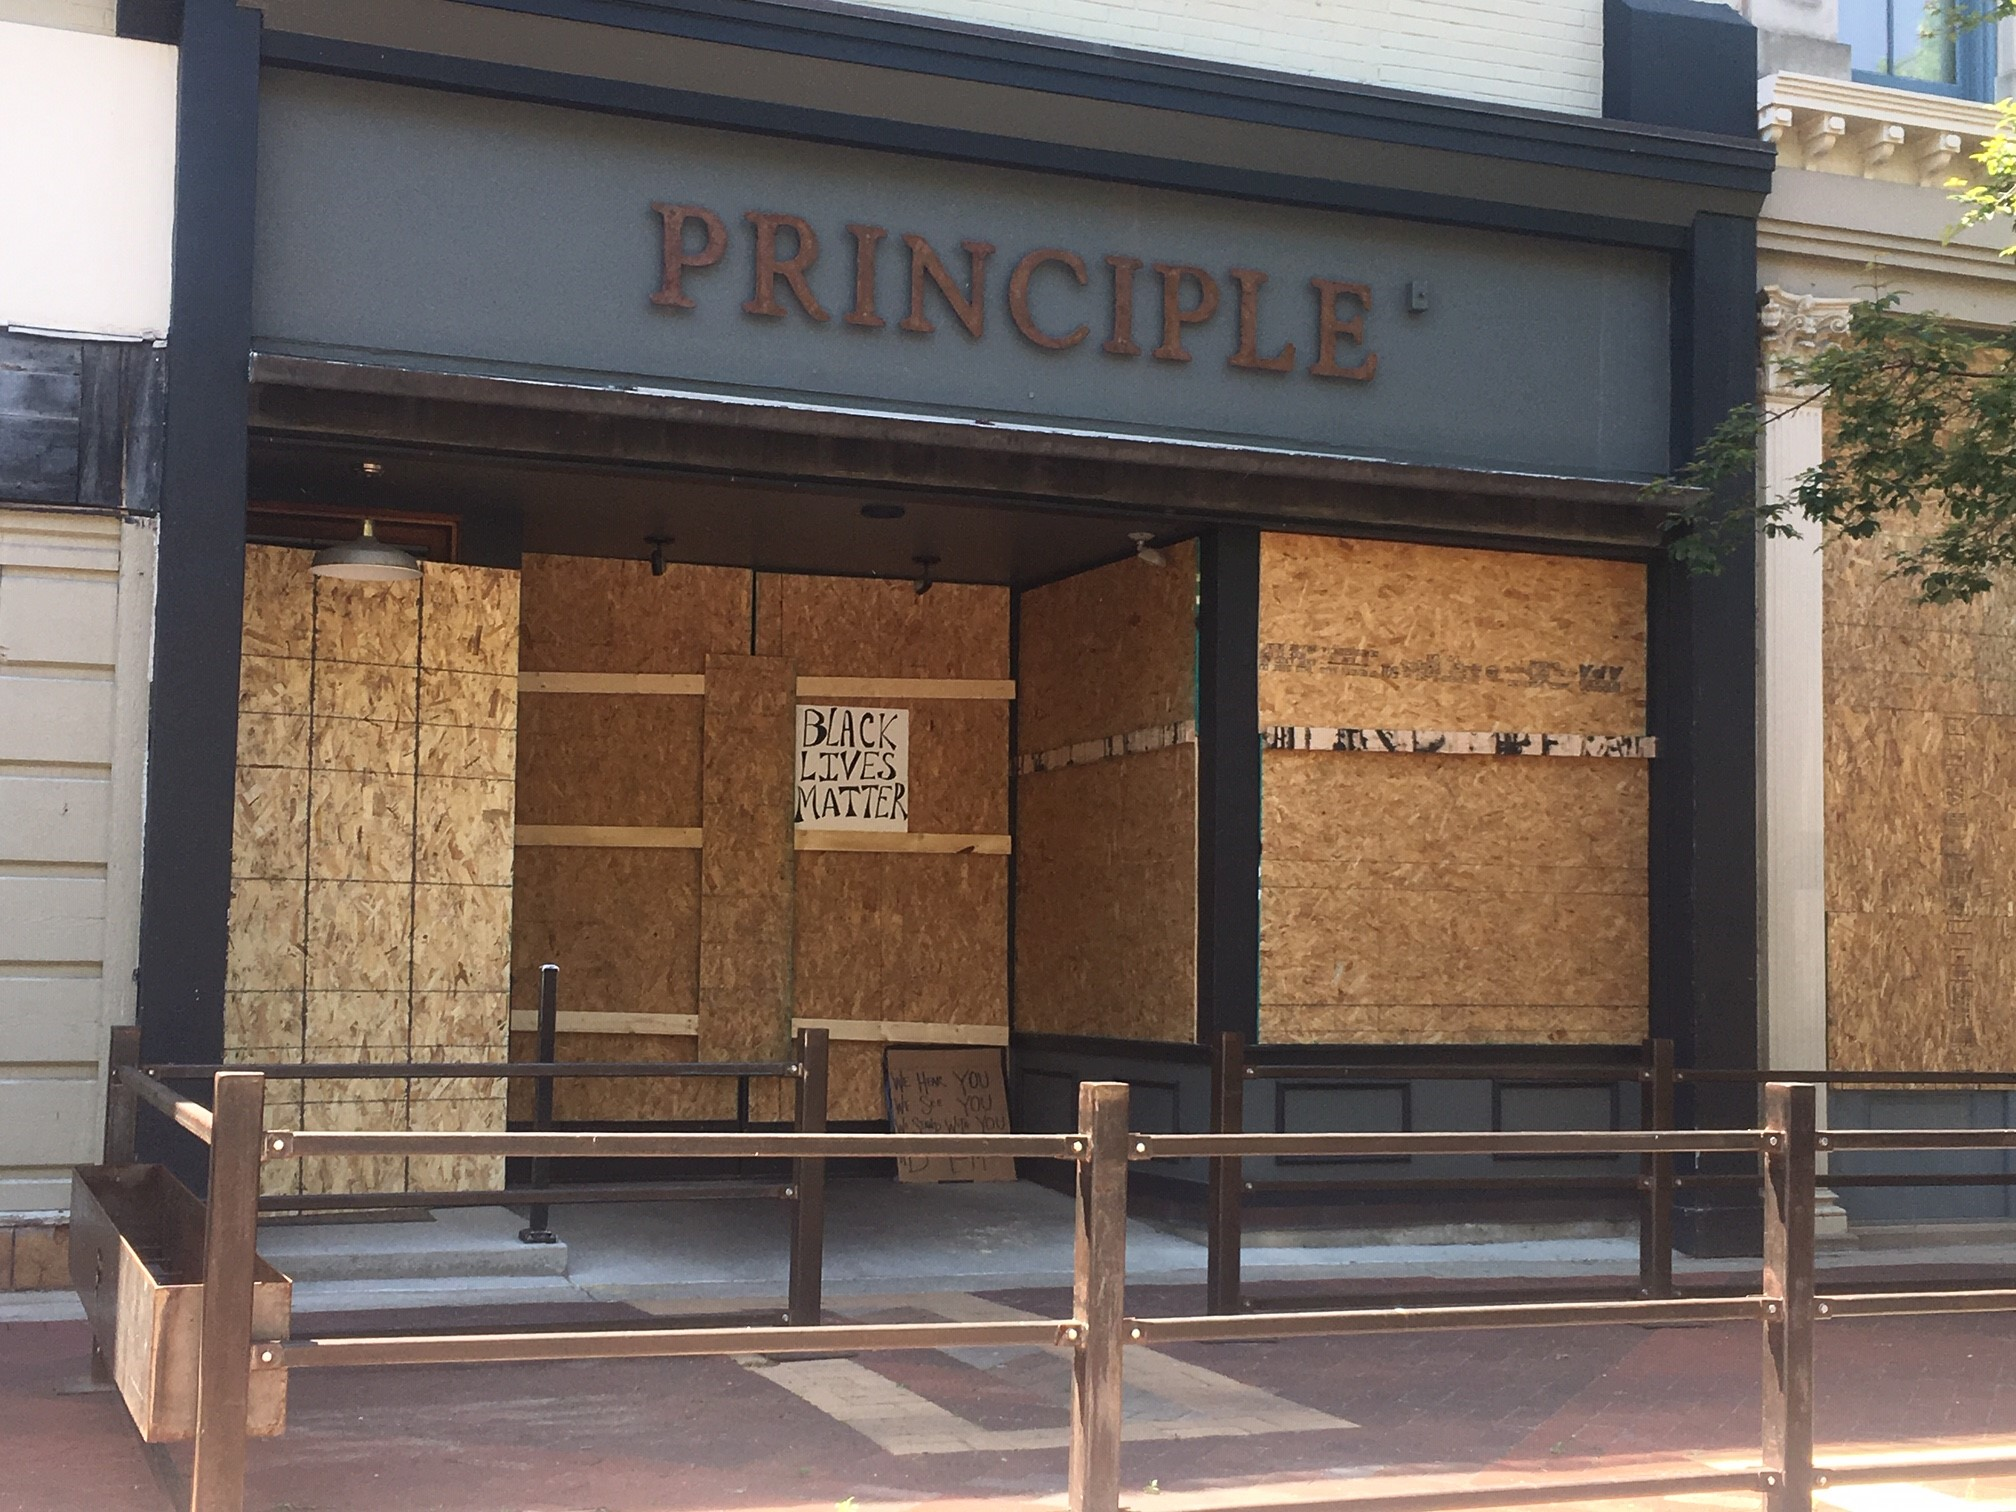 Principle Food and Drink sits boarded up Tuesday, June 2, 2020, after announcing on its website that it is closing for the day. The restaurant says it will reopen Wednesday. (WWMT/Mike Krafcik)